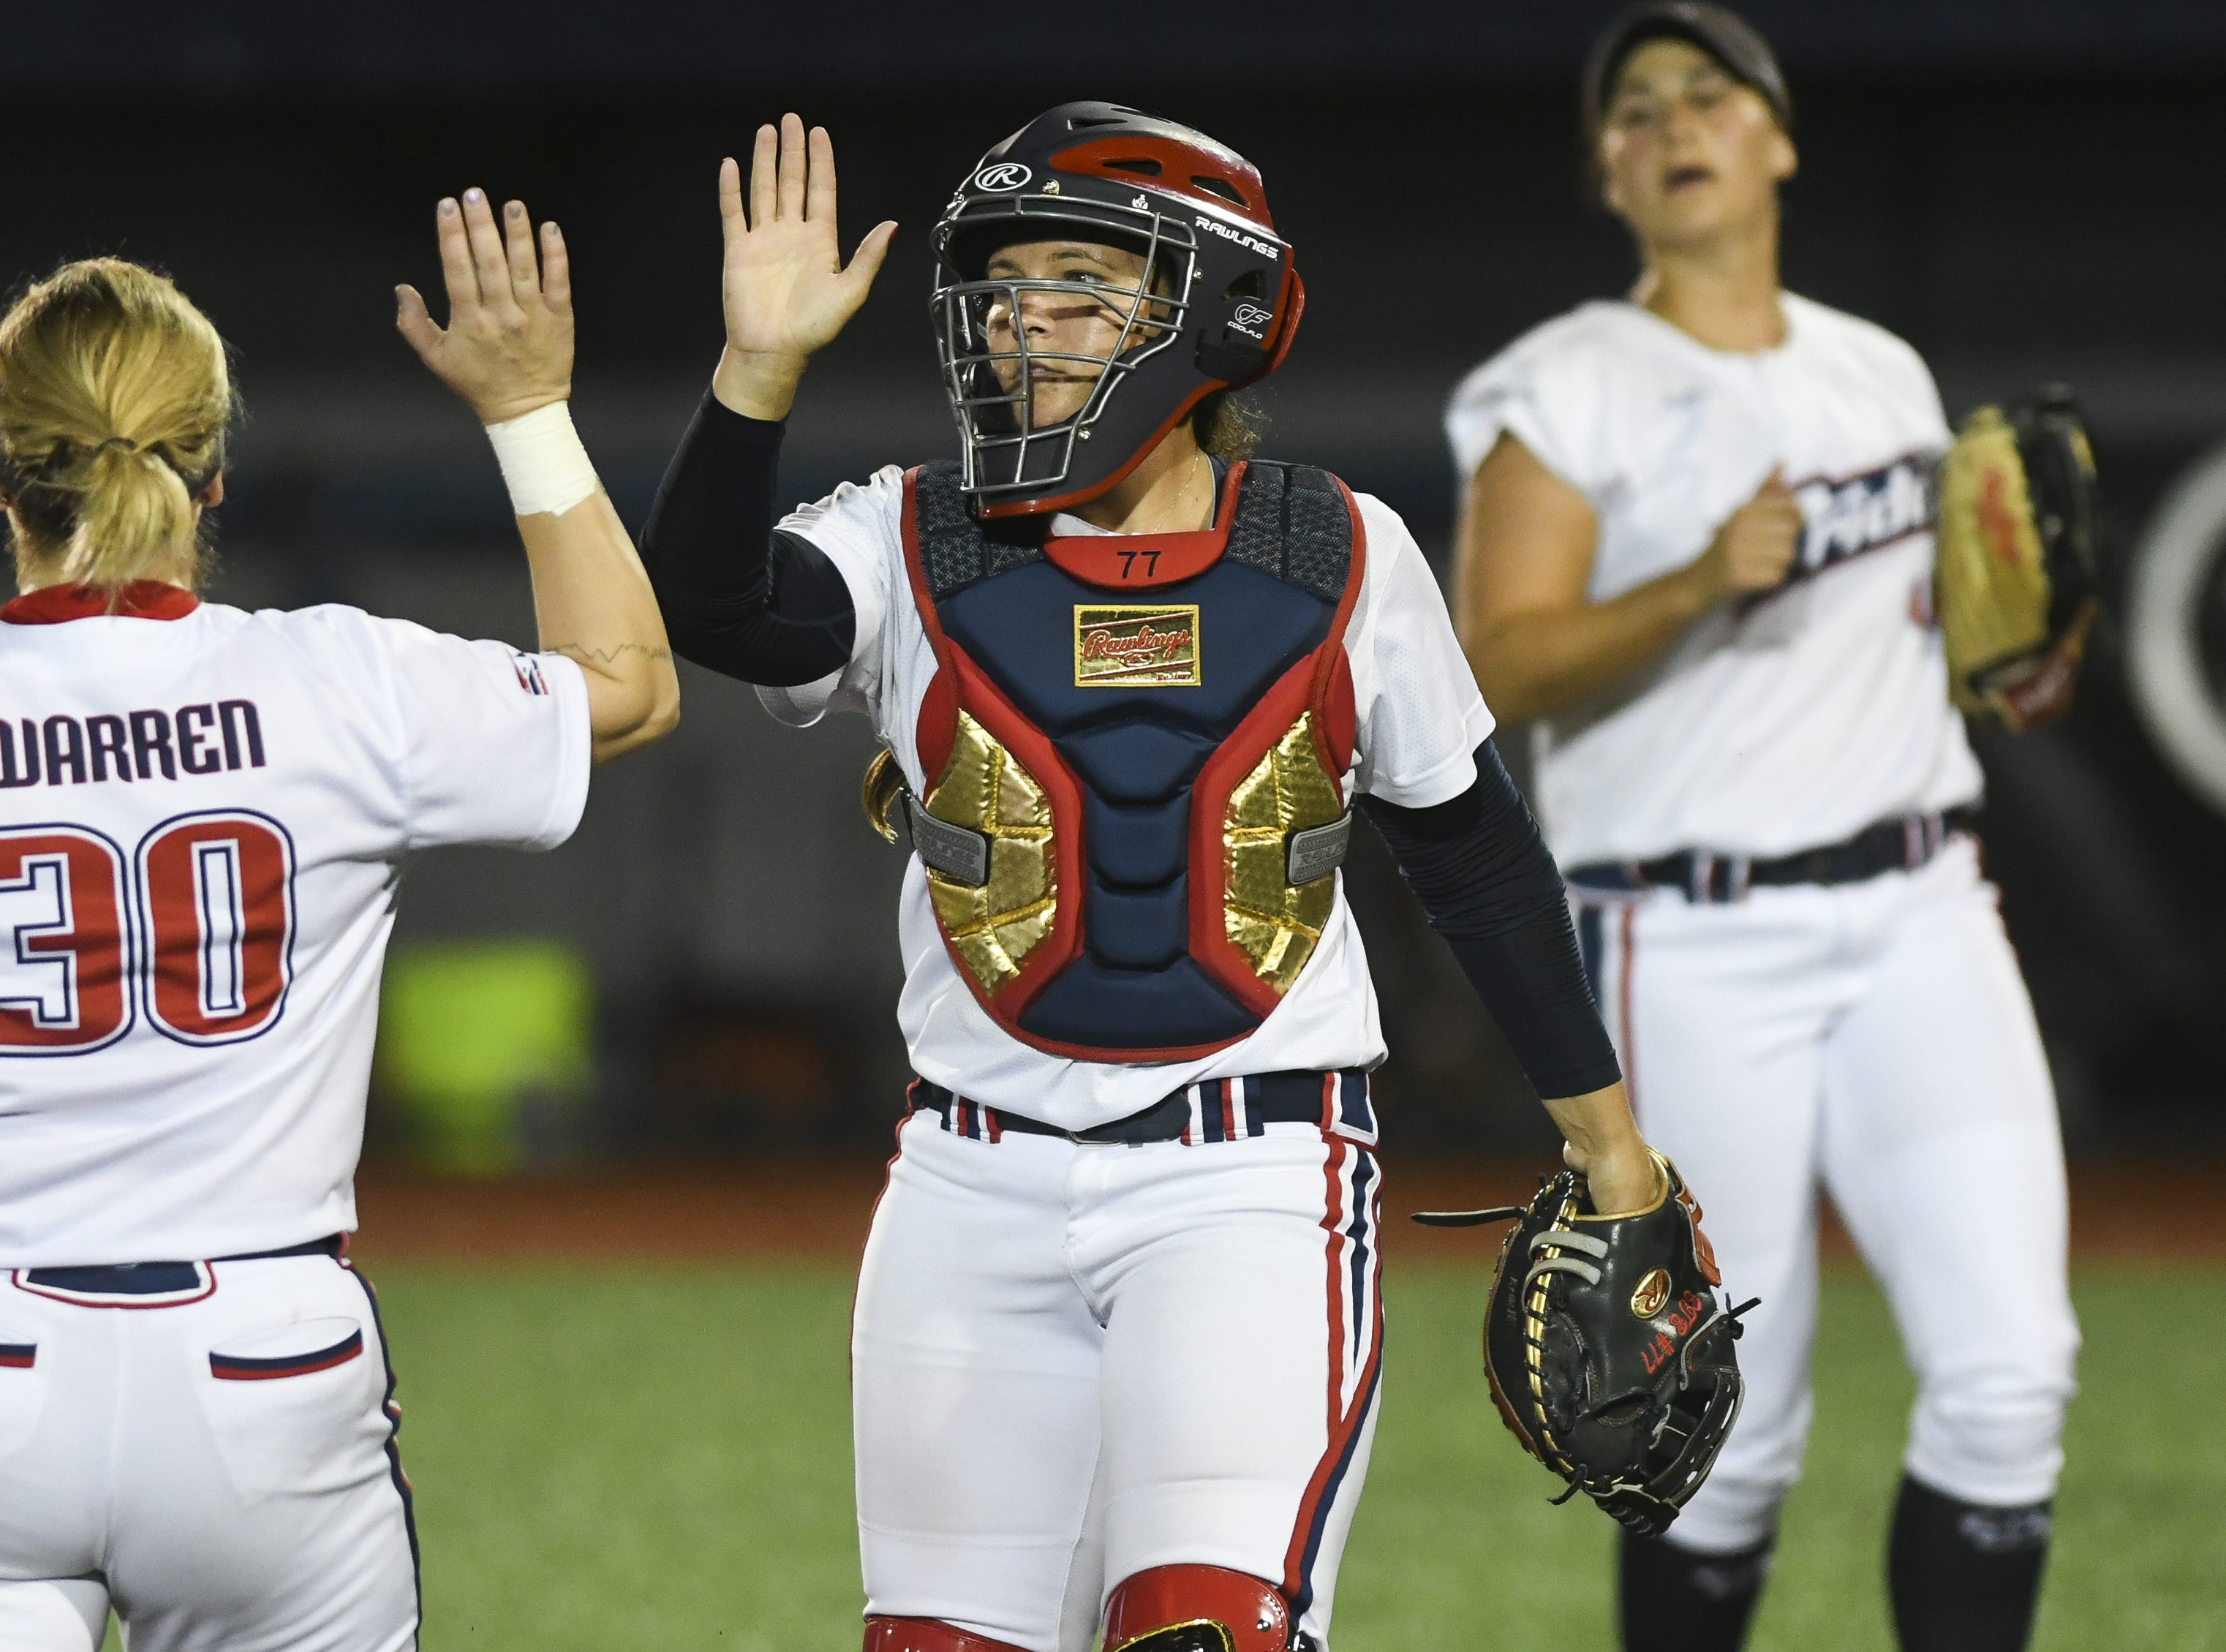 Jessie Warren of the Pride high fives catcher Chelsea Goodacre during Friday's game in Viera.